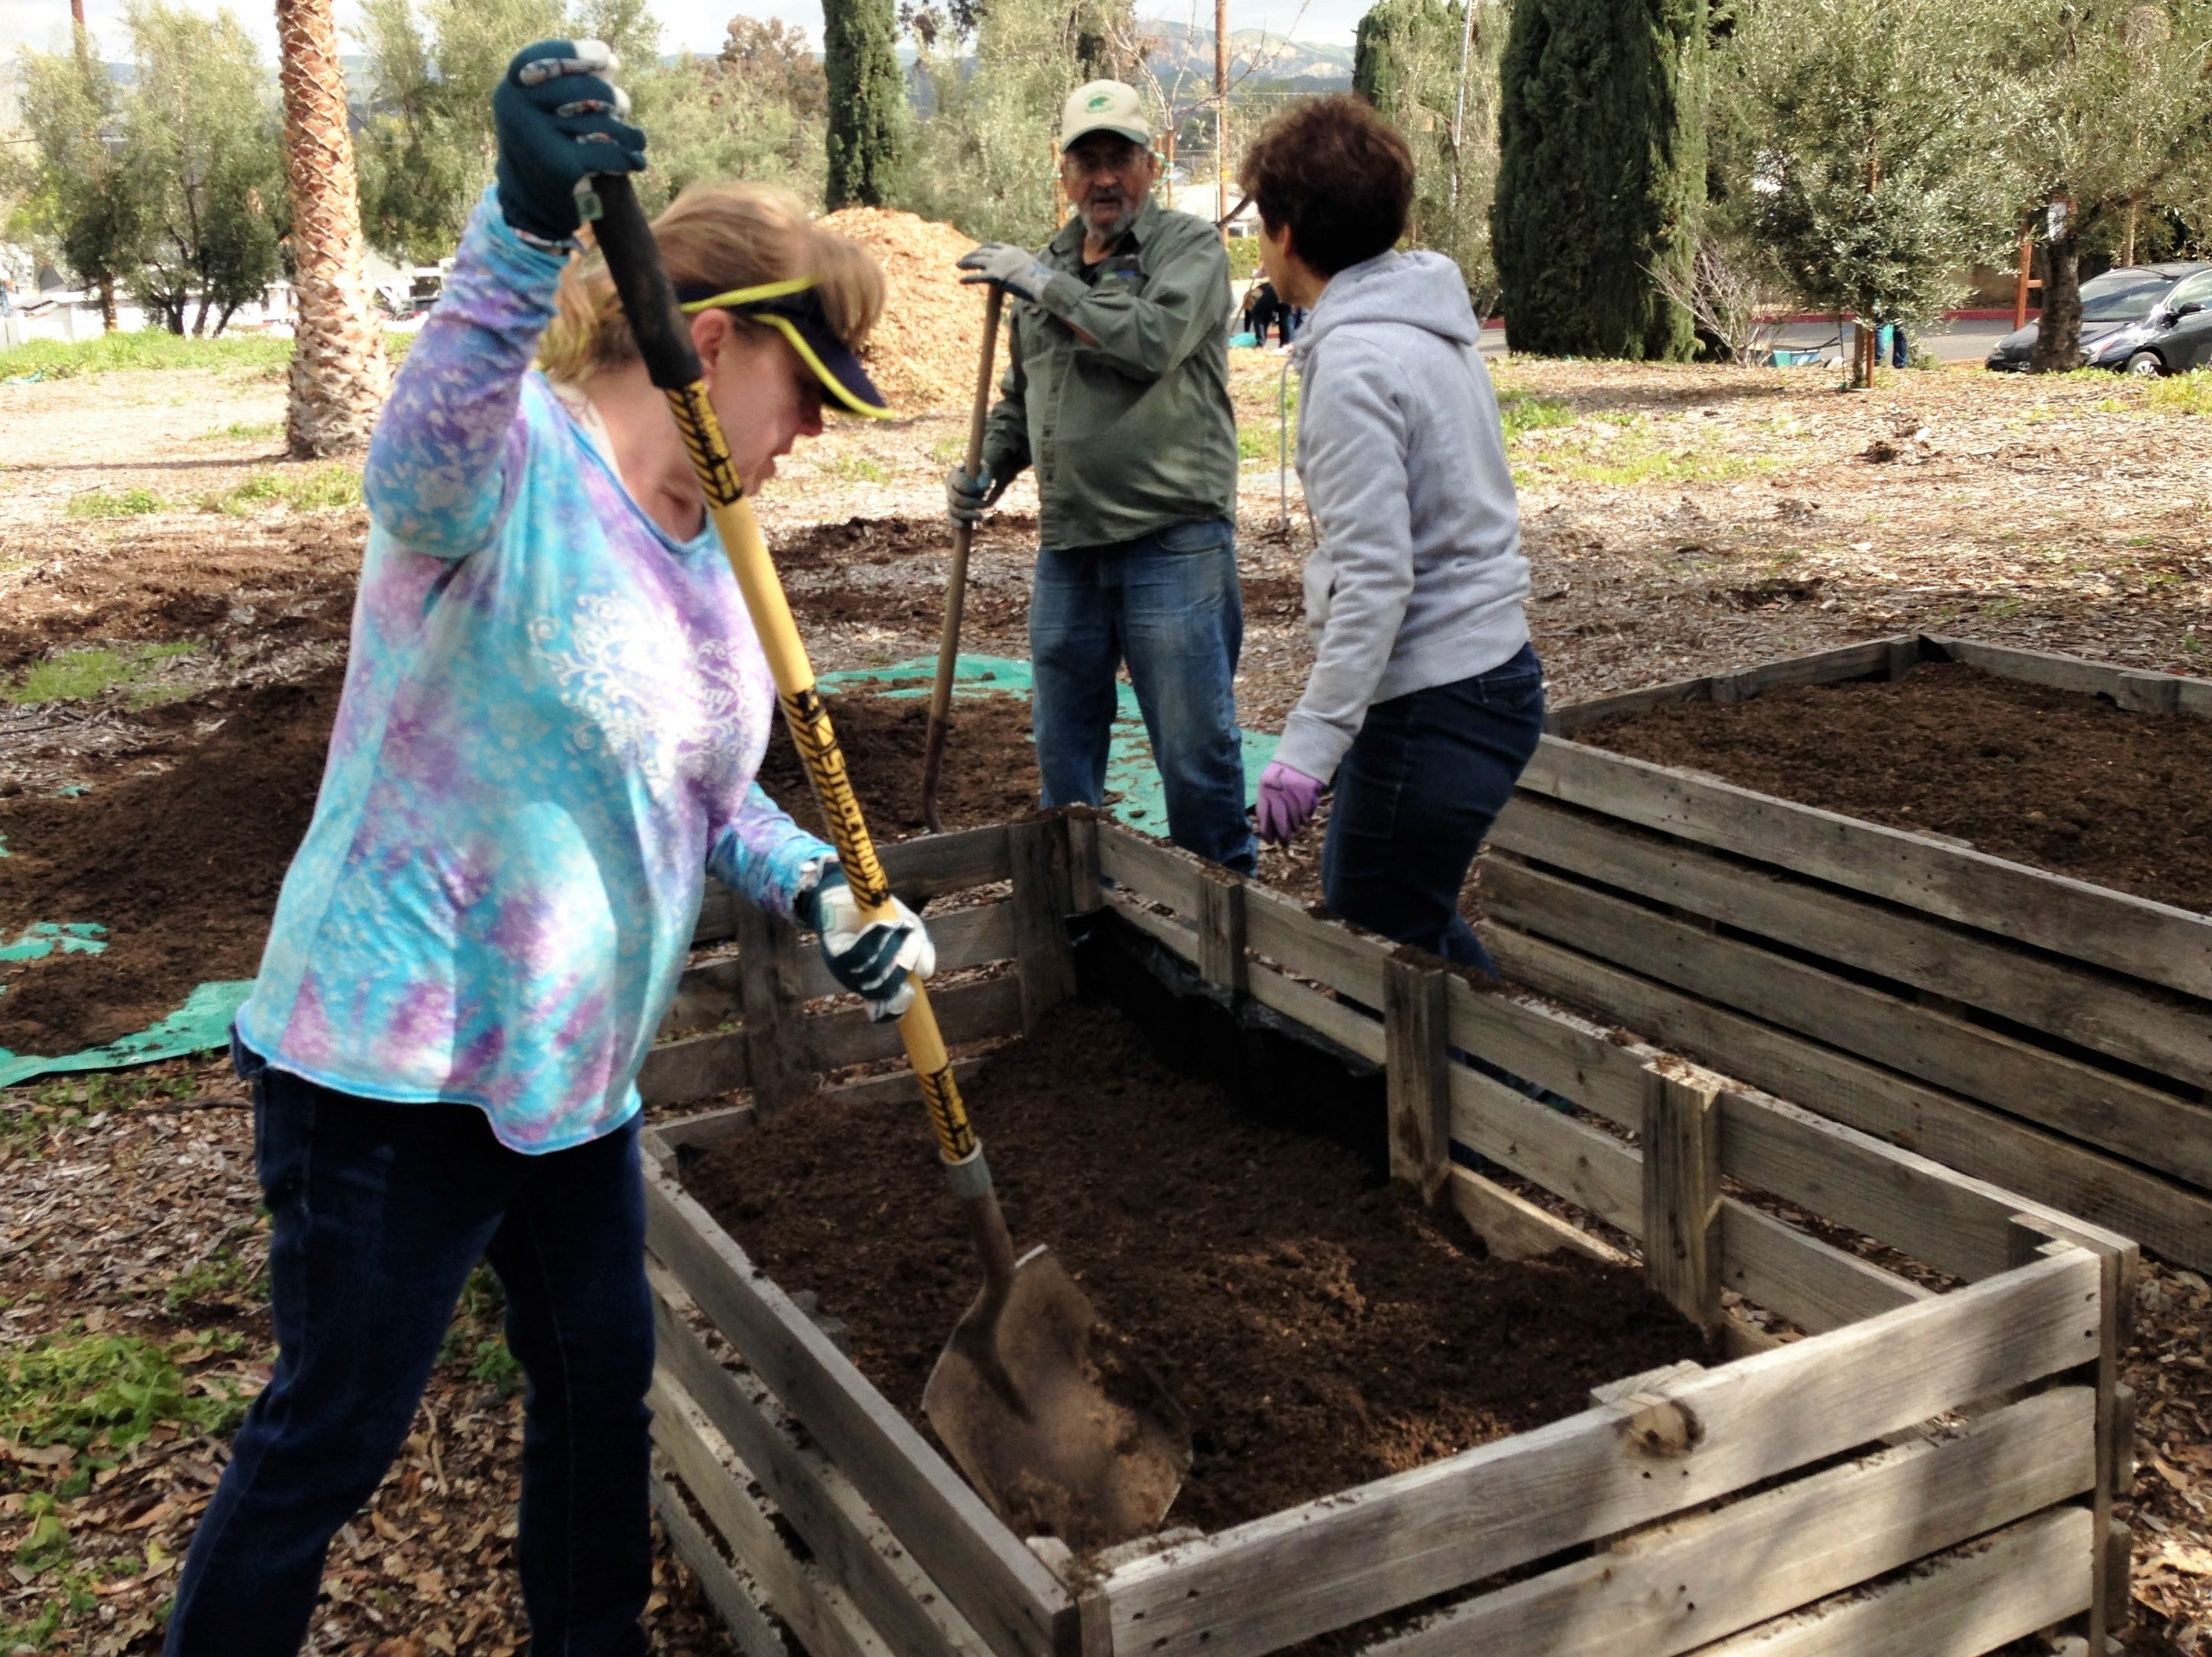 Lynn Mahlmeister, Joe Santos and Lynne Kelly, all of Simi Valley, fill garden boxes with dirt at the Simi Valley Samaritan Center on Saturday during Community Volunteer Day. The garden boxes were donated by the city's community garden called Simi at the Garden.